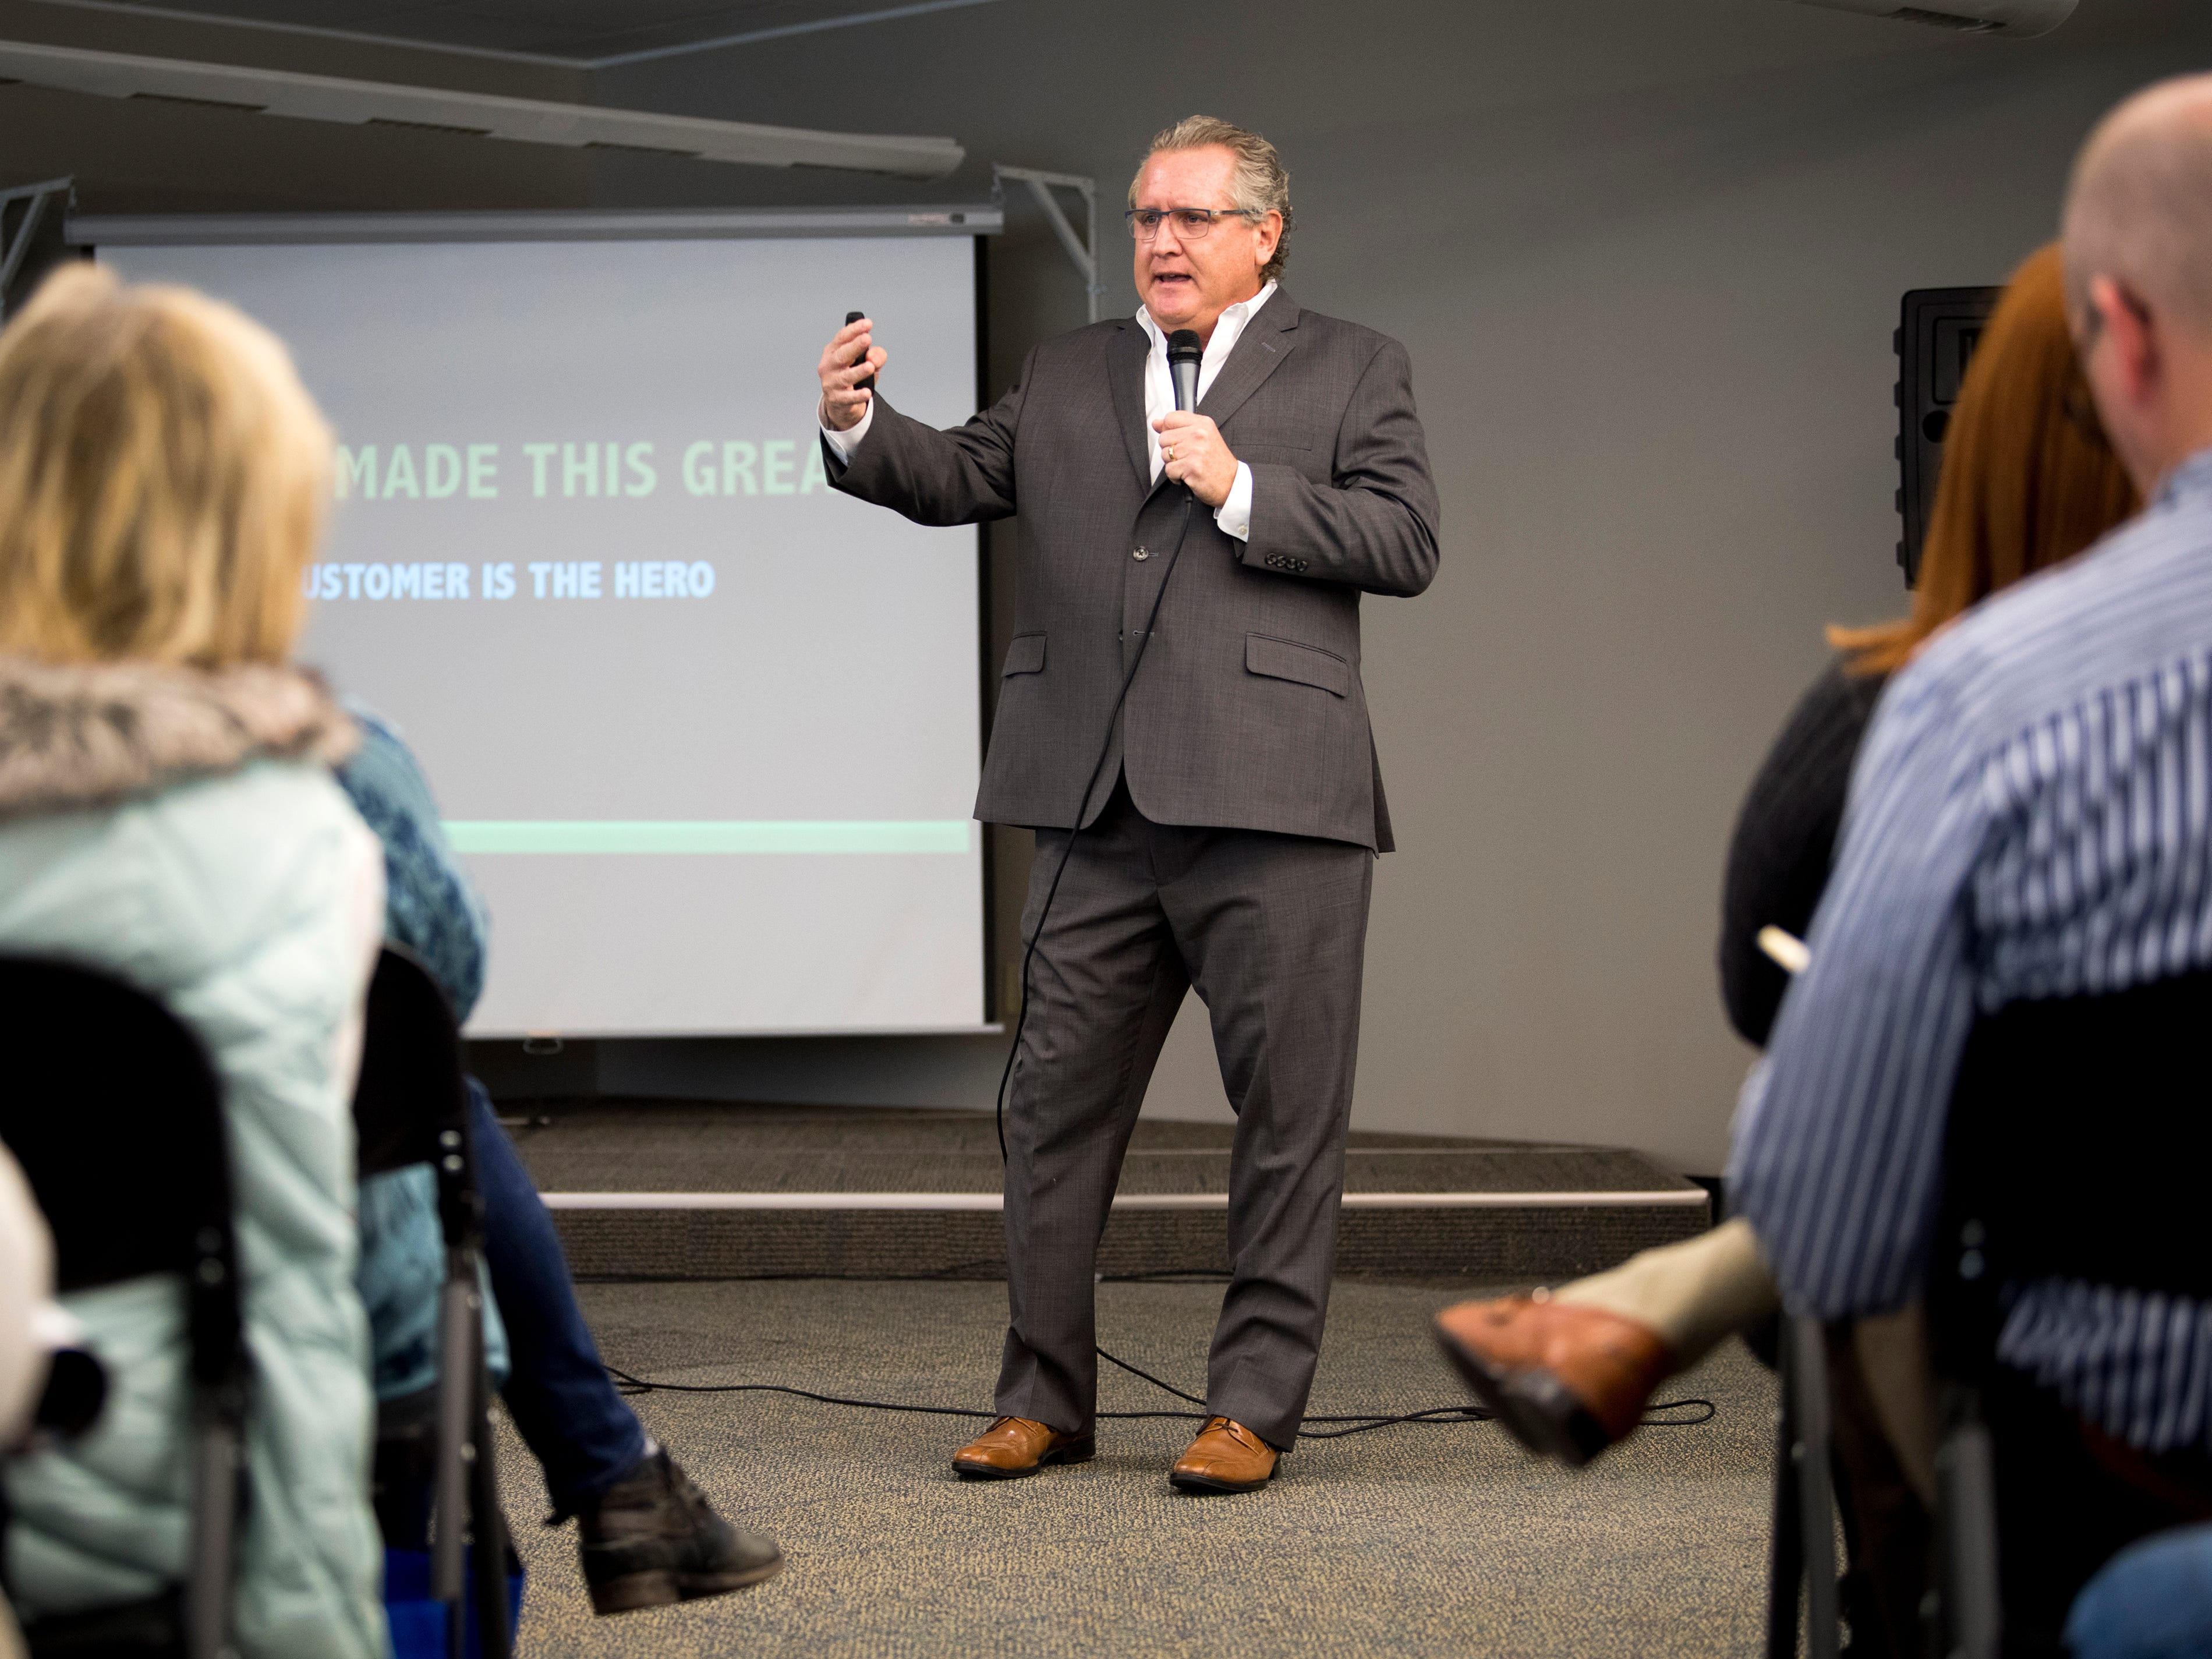 Mark Schaefer speaks at his book release event with knox.biz held at the Knoxville News Sentinel on Wednesday, February 13, 2019.